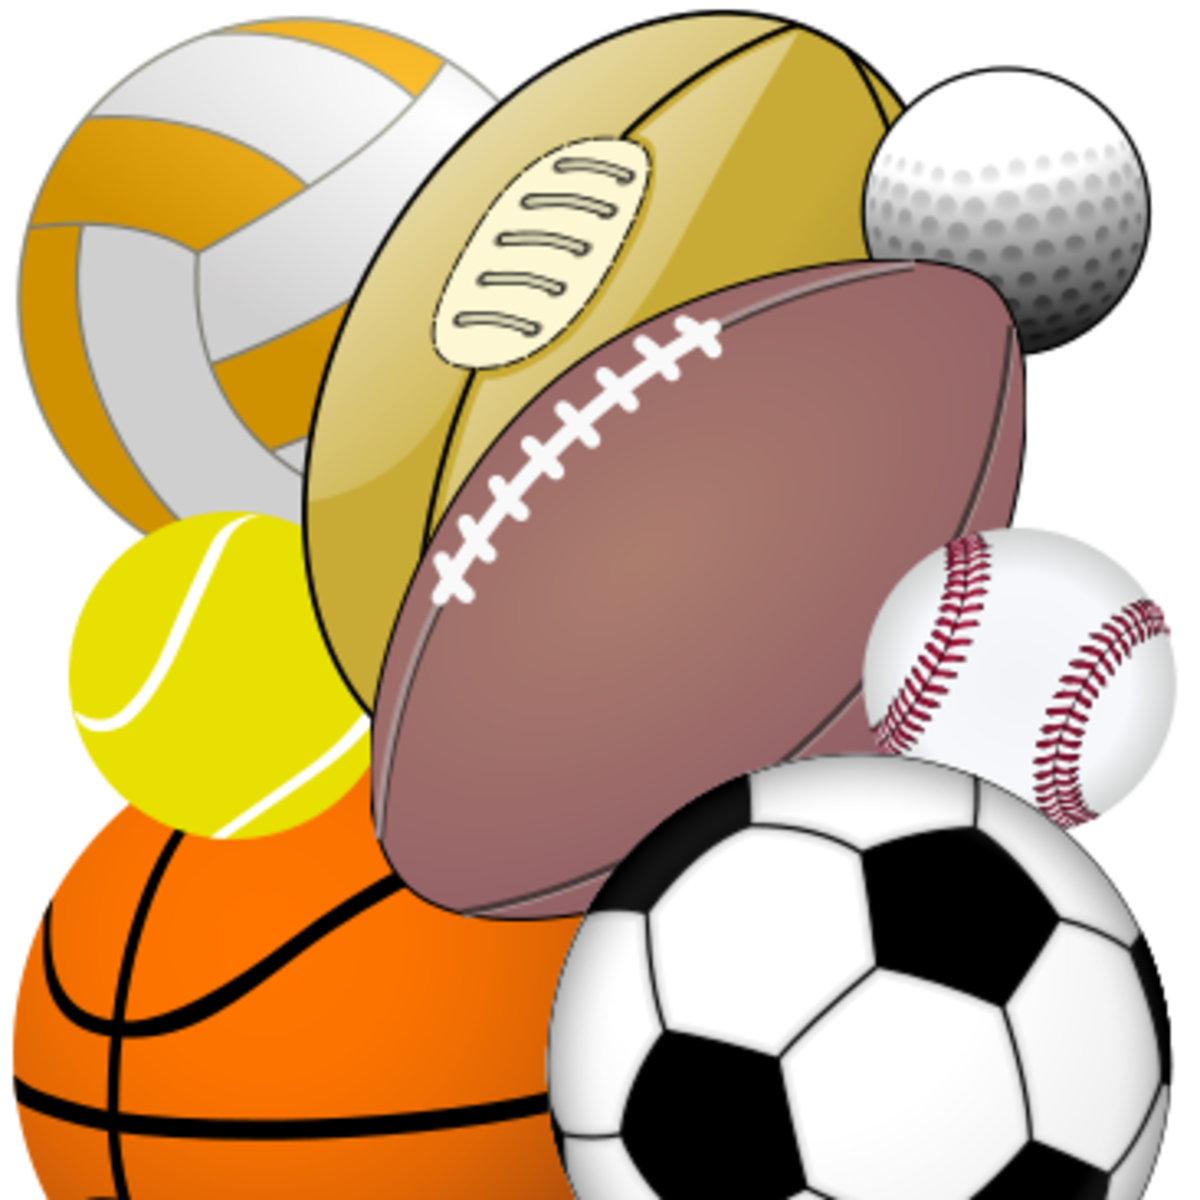 Sports equipment physical education. Pe clipart sport facility